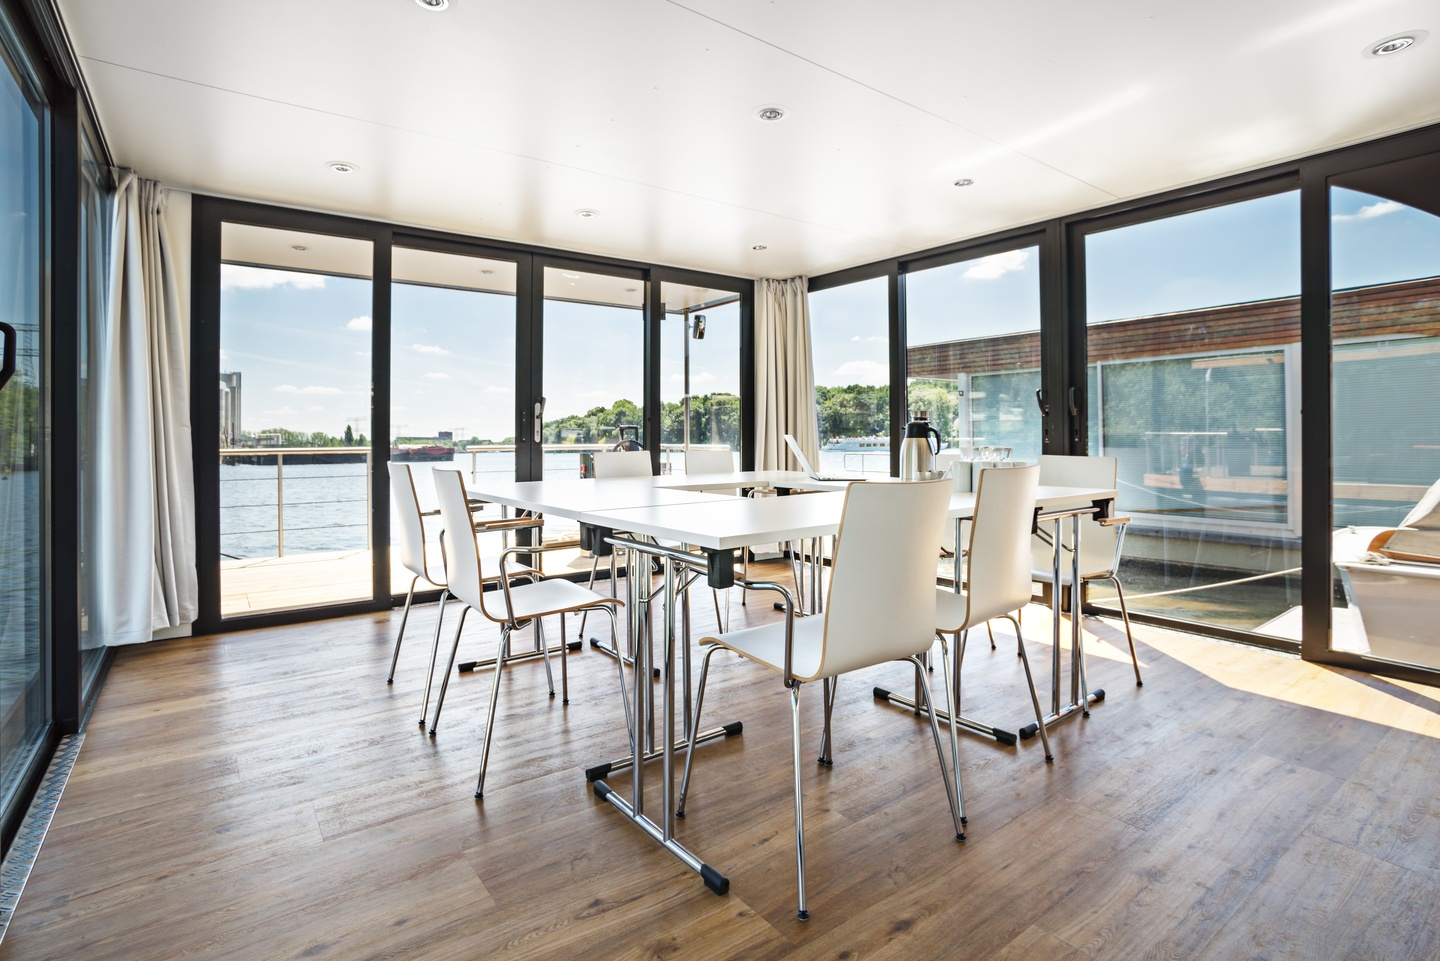 Berlin seminar rooms Bateau The Floating Office image 1